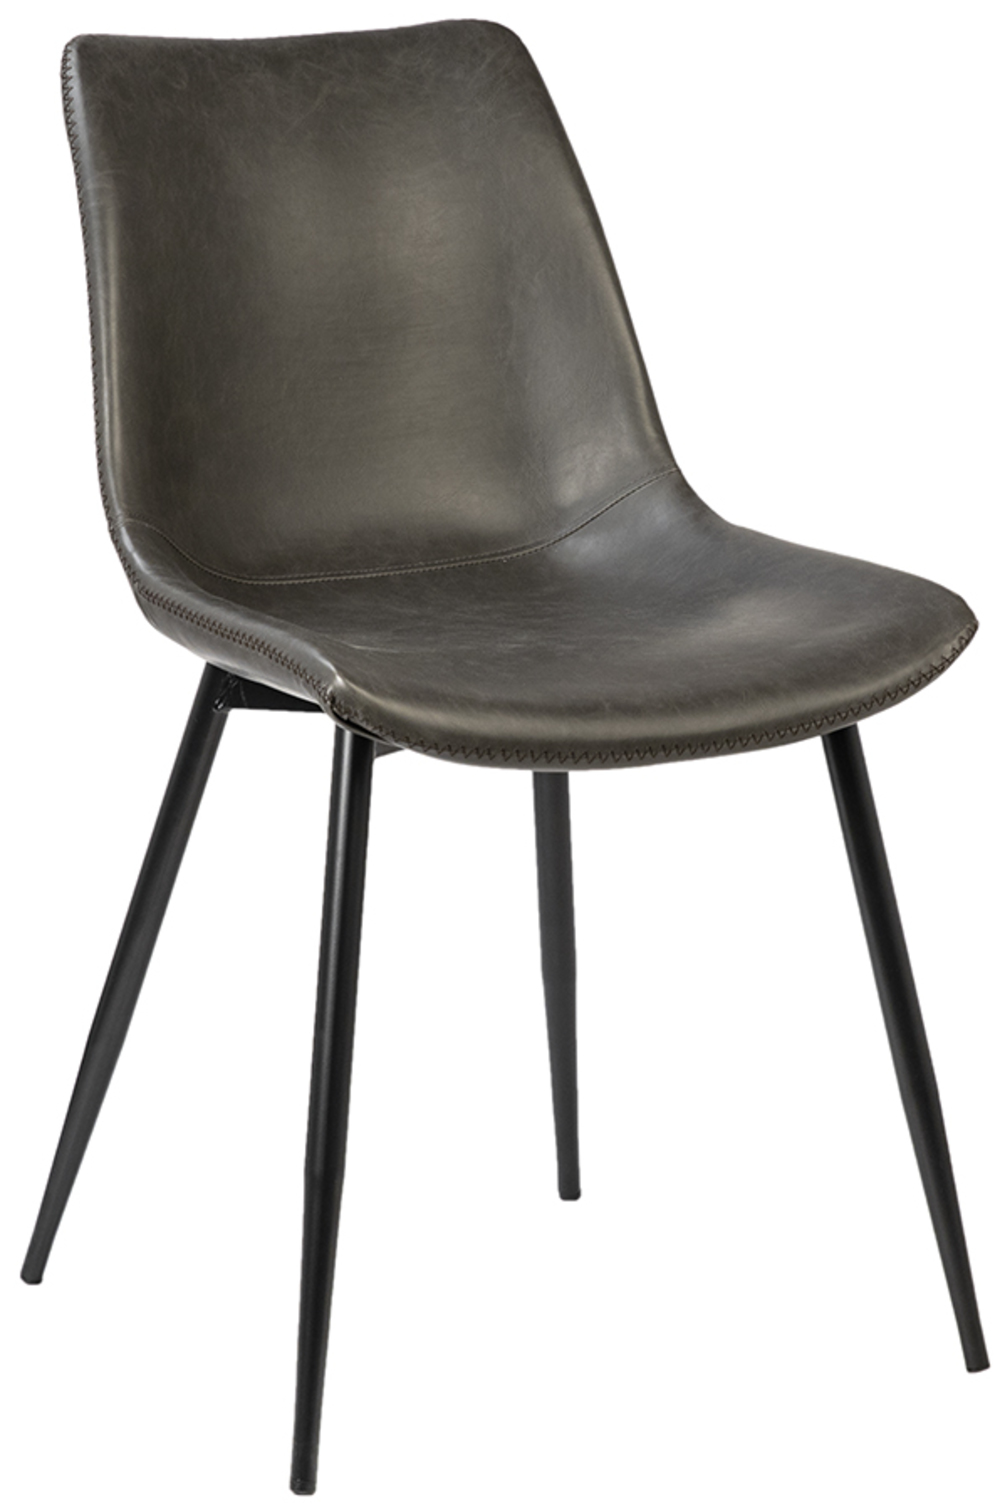 Dovetail Furniture - Rufina Dining Chair